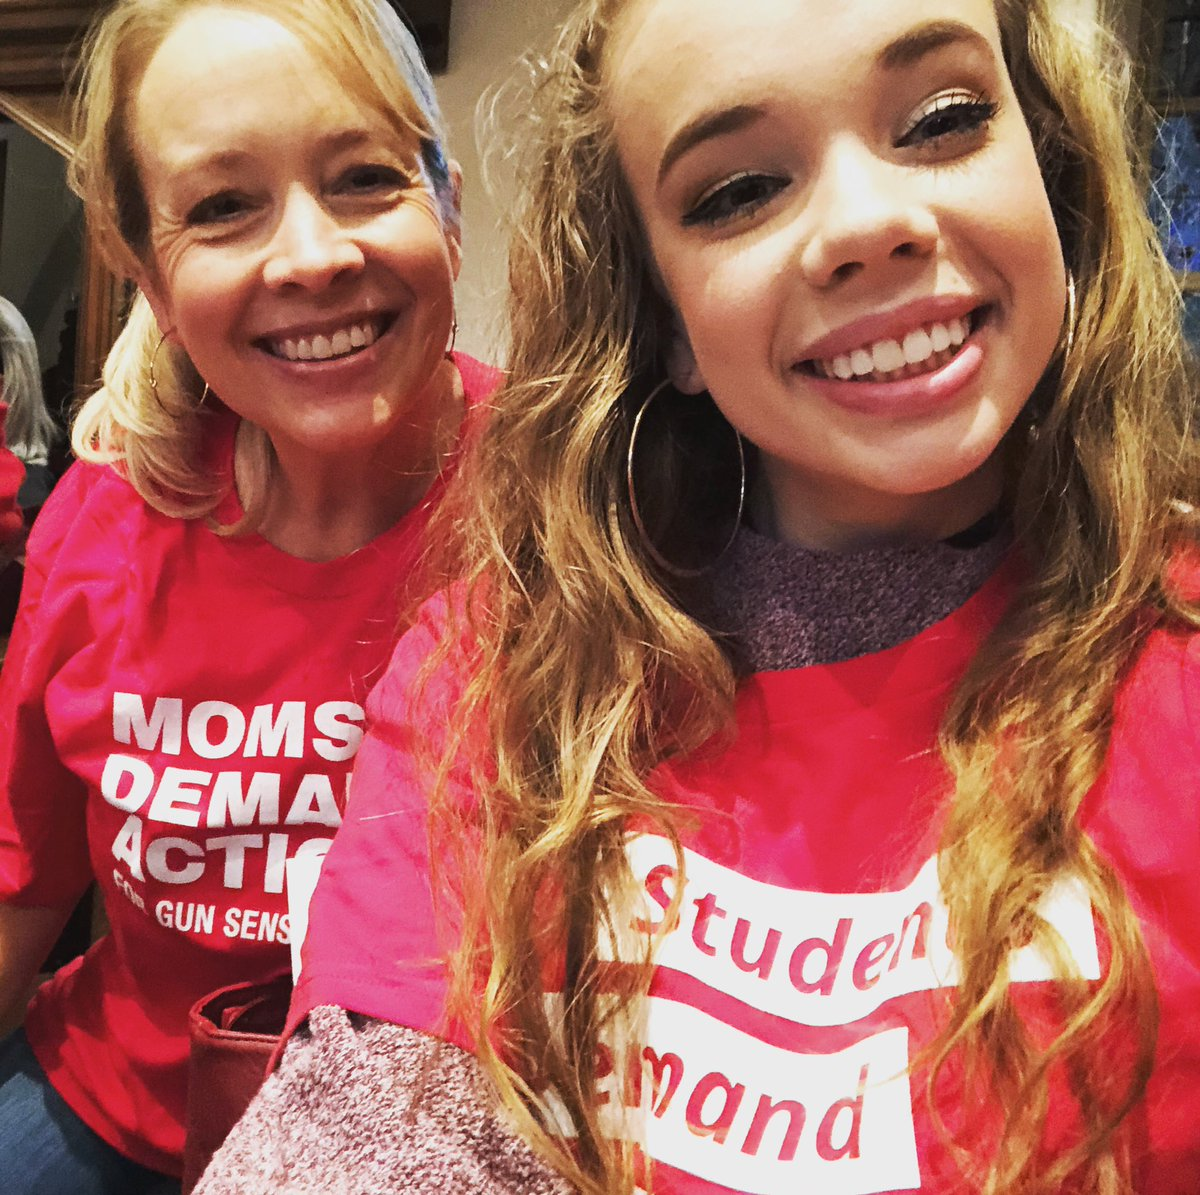 Bringing my daughter to her first Moms Demand Action Advocacy Day in GA!! #gapol #MomsDemandAction